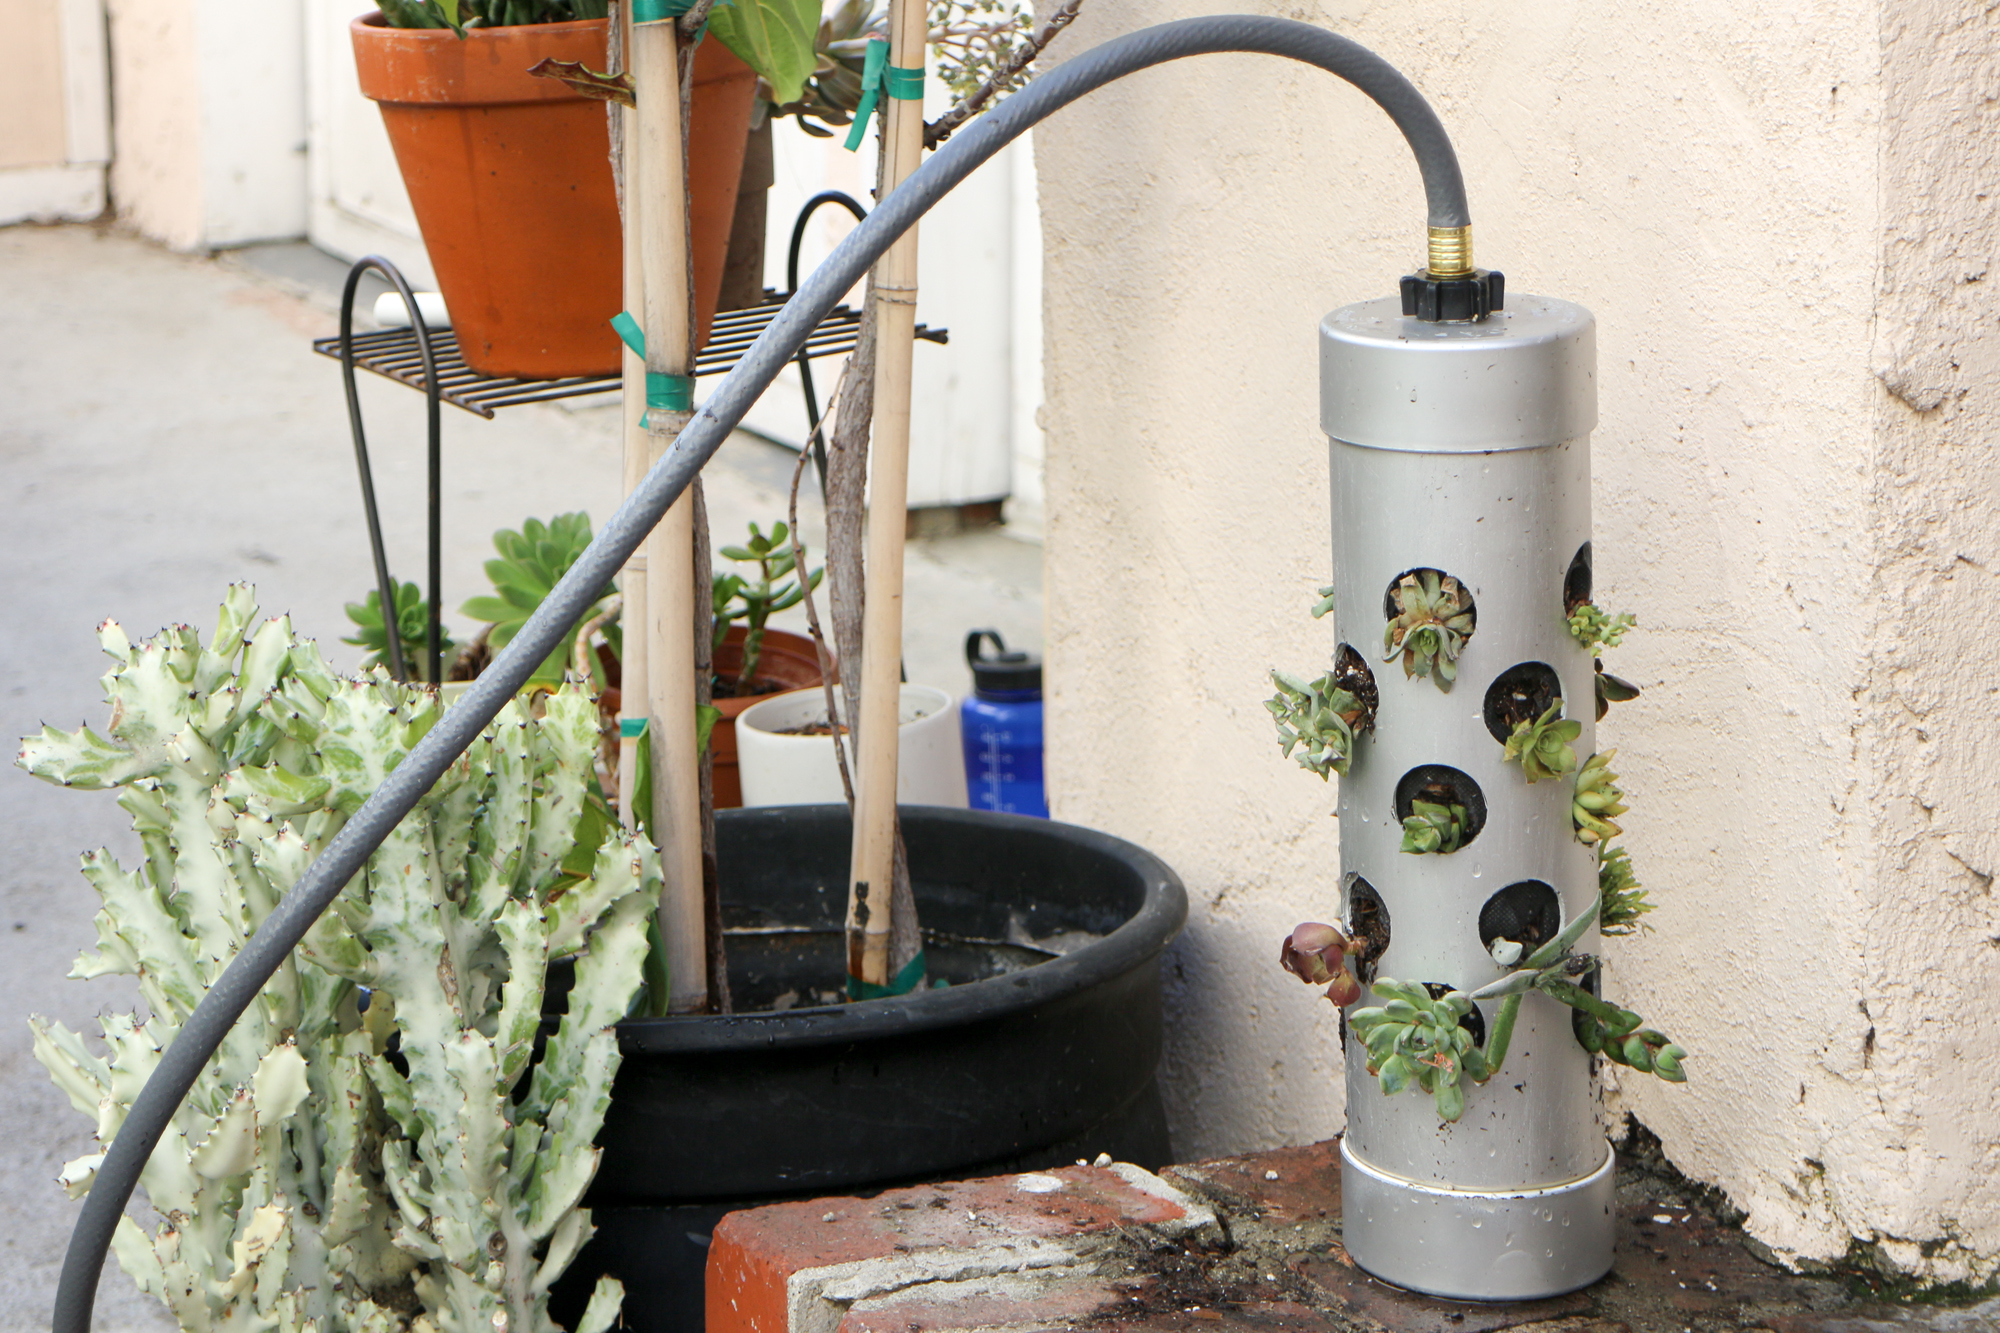 Vertical Gardening Pipe 11 Steps With Pictures Instructables